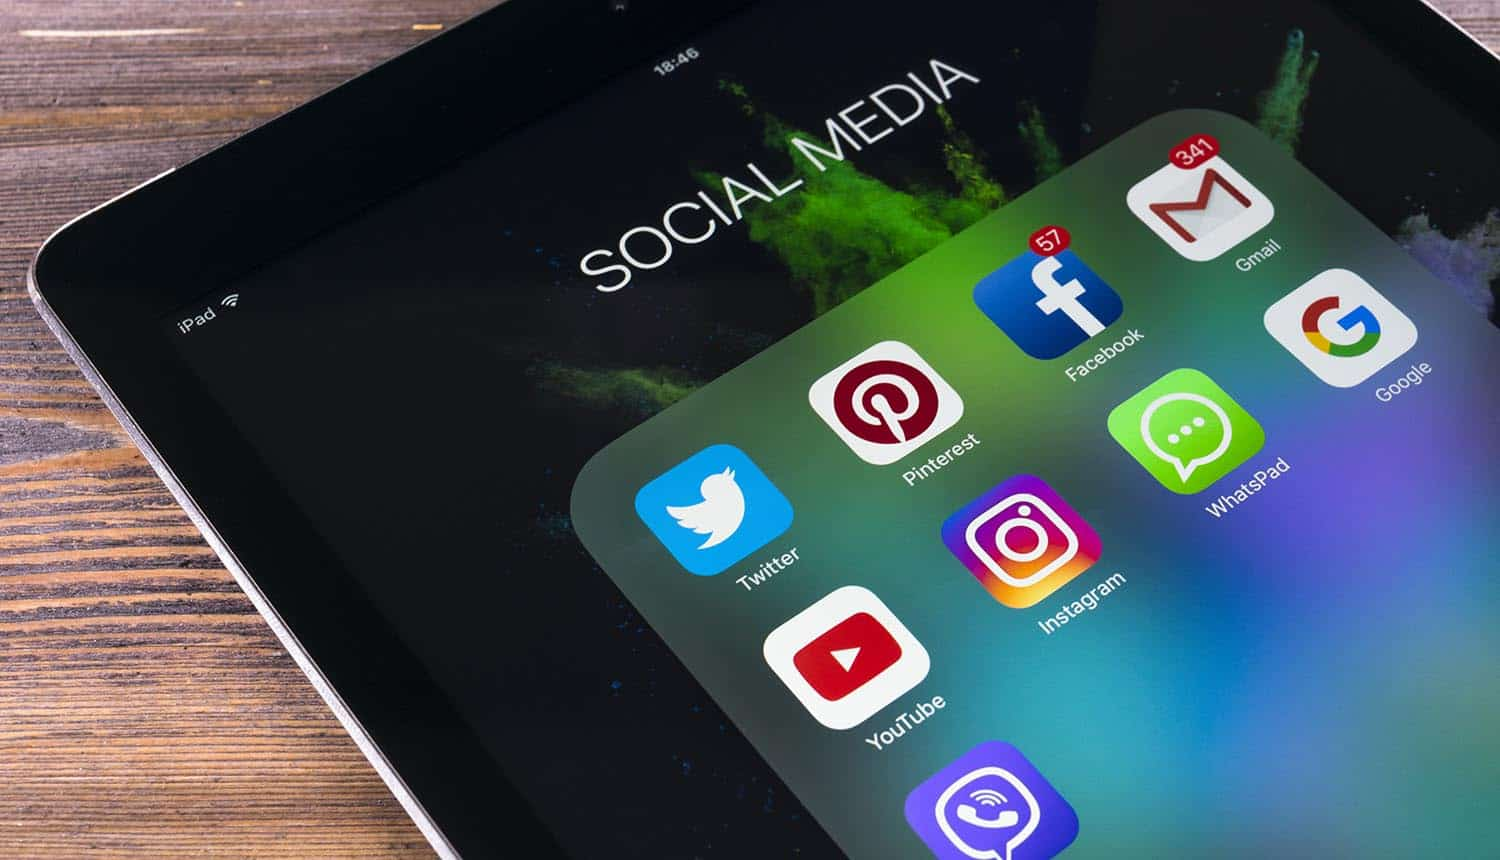 Social media applications on mobile phone showing social media platforms are the core problem to online trust